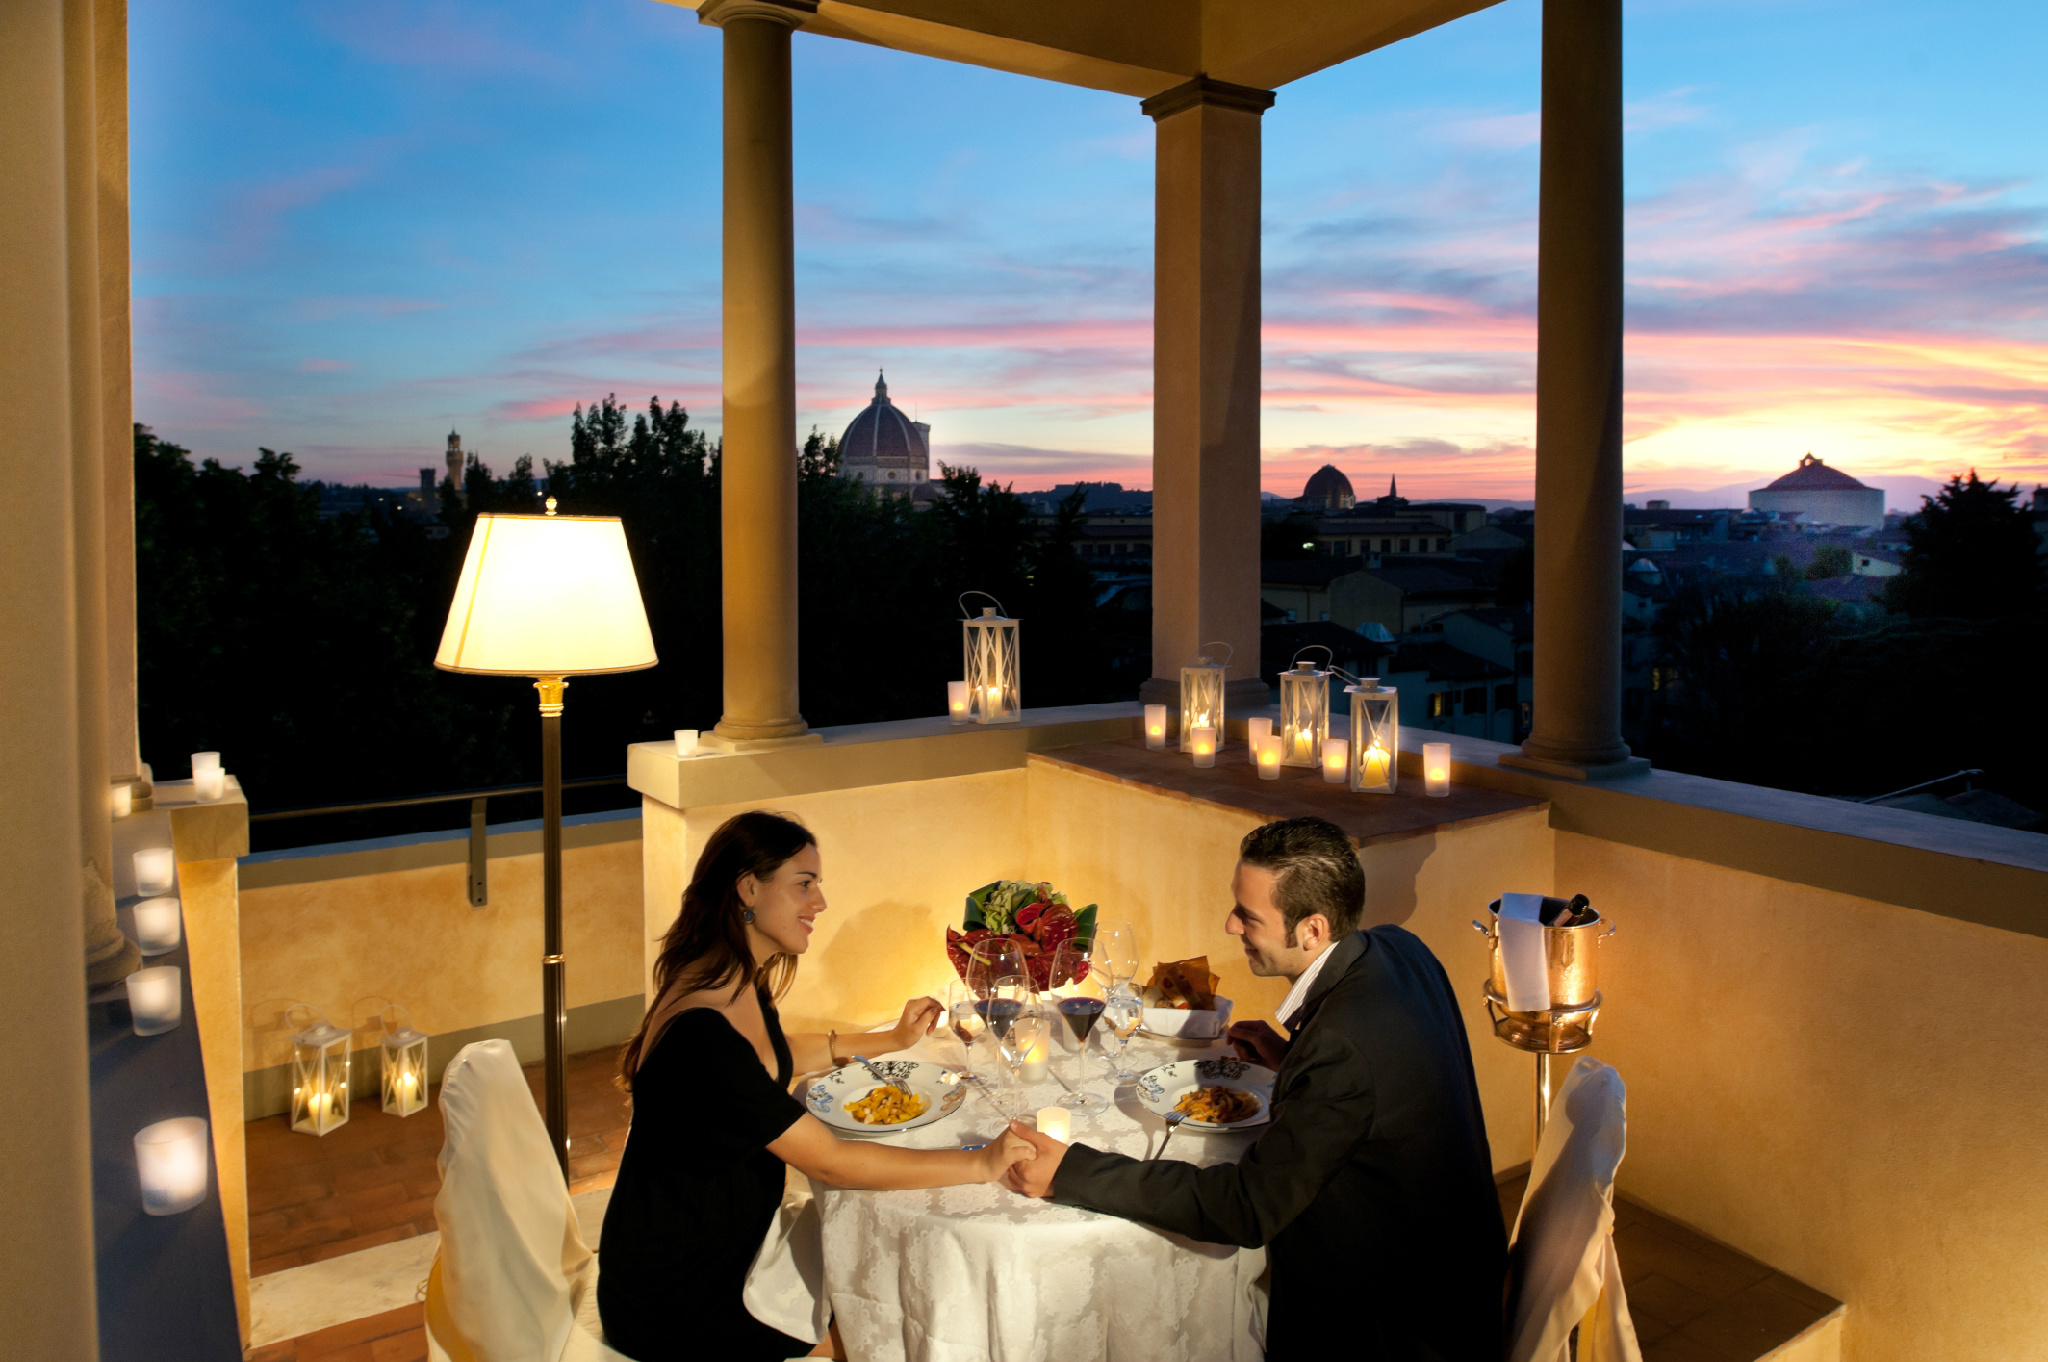 A candle light dinner for two on the @FSFlorence roof top terrace with 360 degrees view of Florence @FSBridal #LuxBride http://t.co/TTd3G6q9